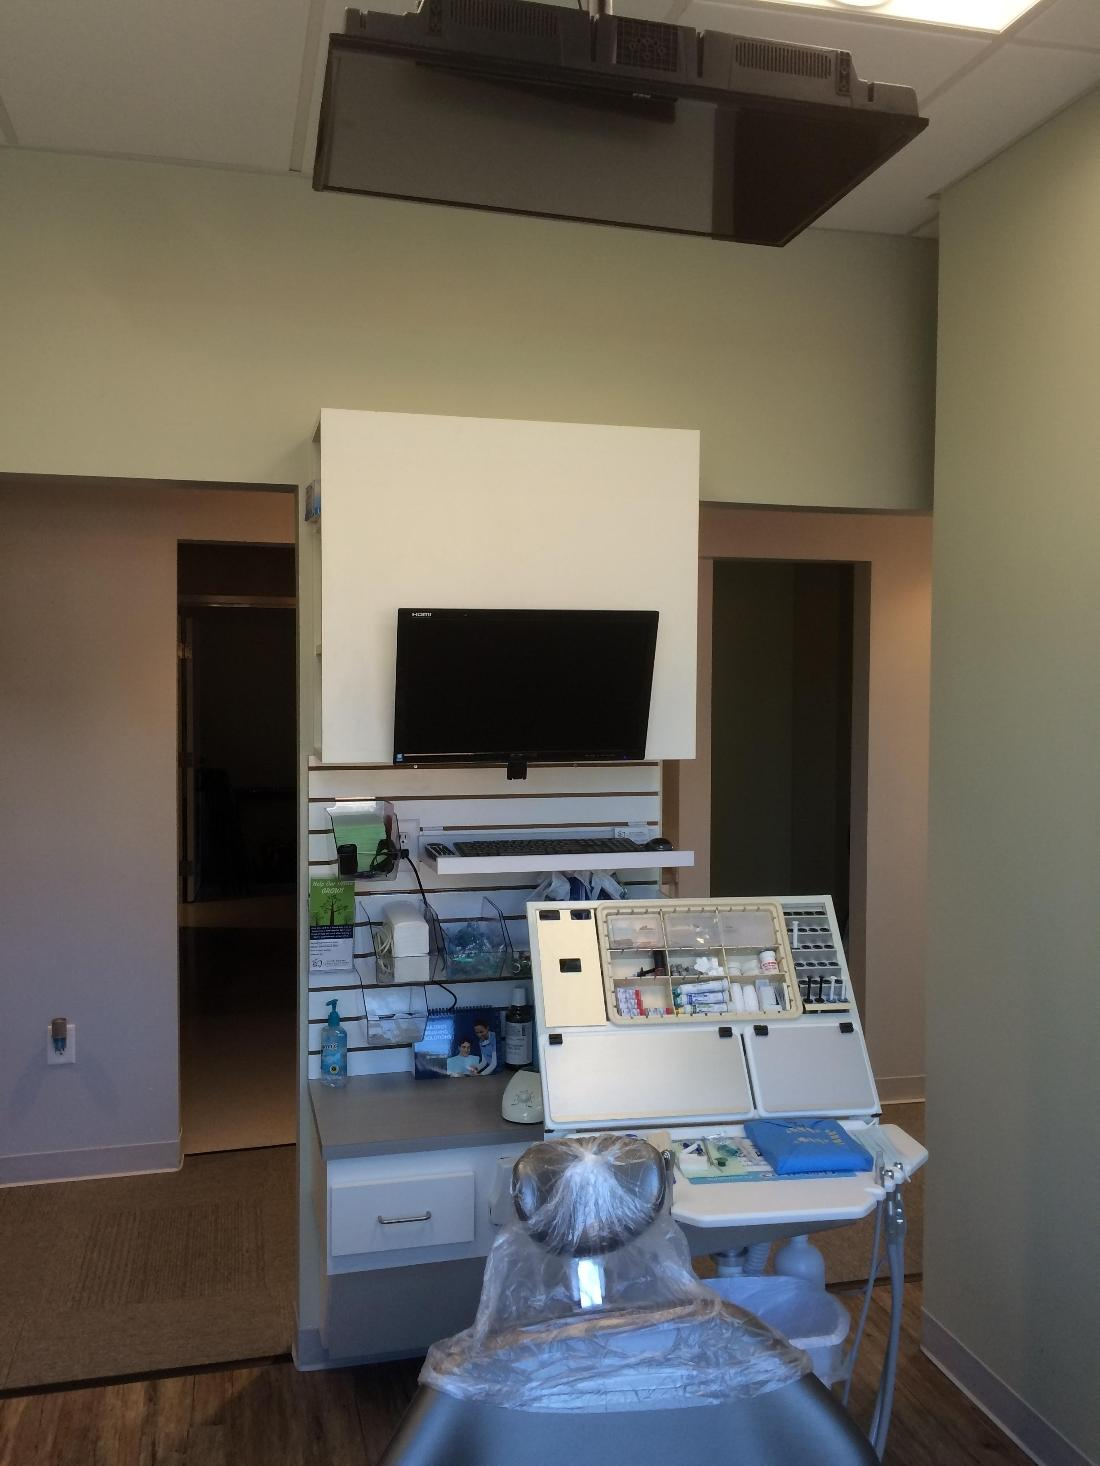 Treatment rooms equipped with all modern technology.